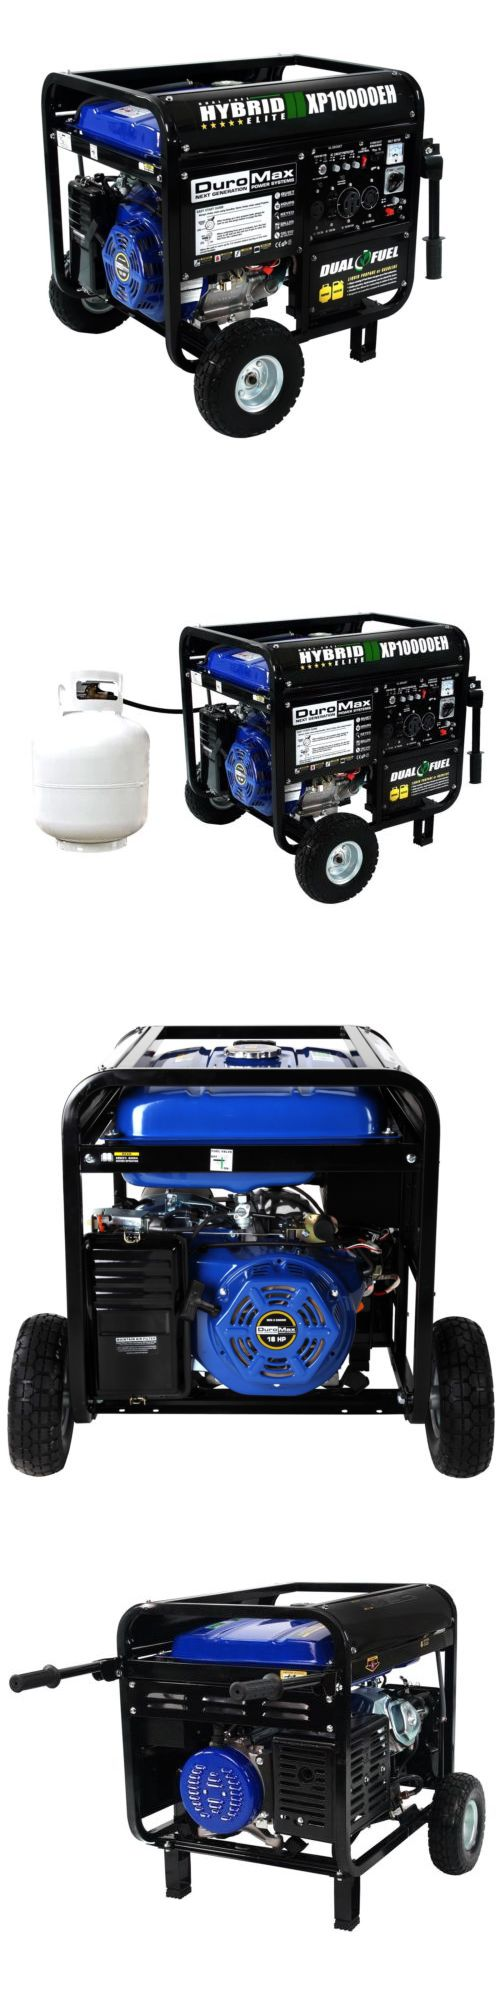 Generators 33082: Duromax 10000 Watt Hybrid Dual Fuel Portable Gas Propane Generator - Rv Standby -> BUY IT NOW ONLY: $969 on eBay!